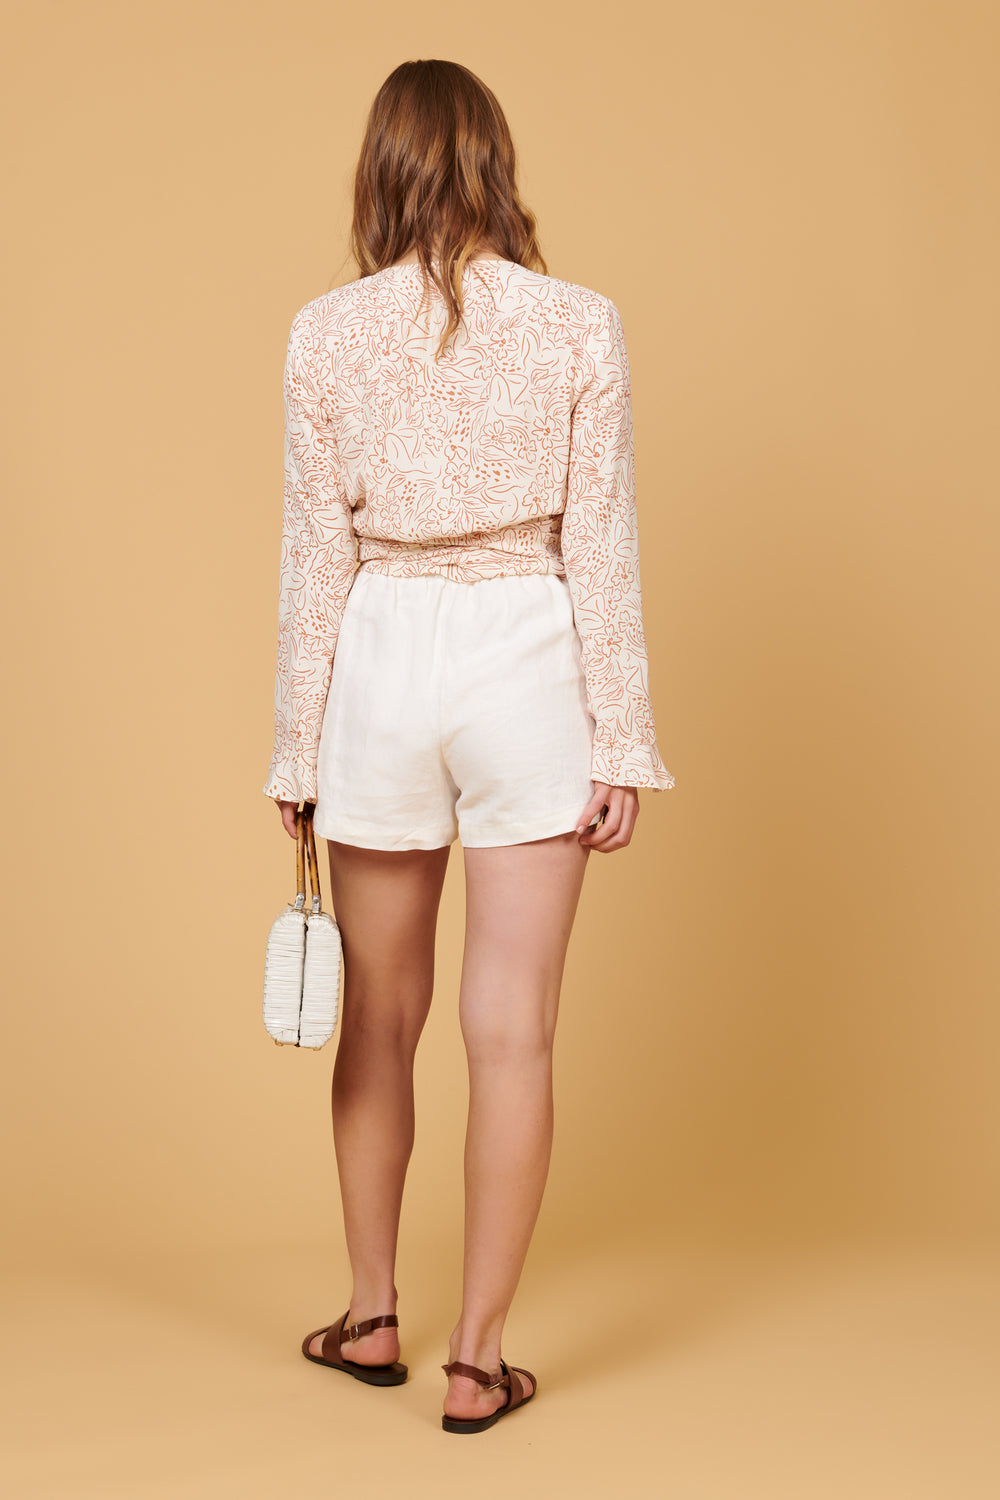 Valentina Shorts in White Linen - Whimsy & Row